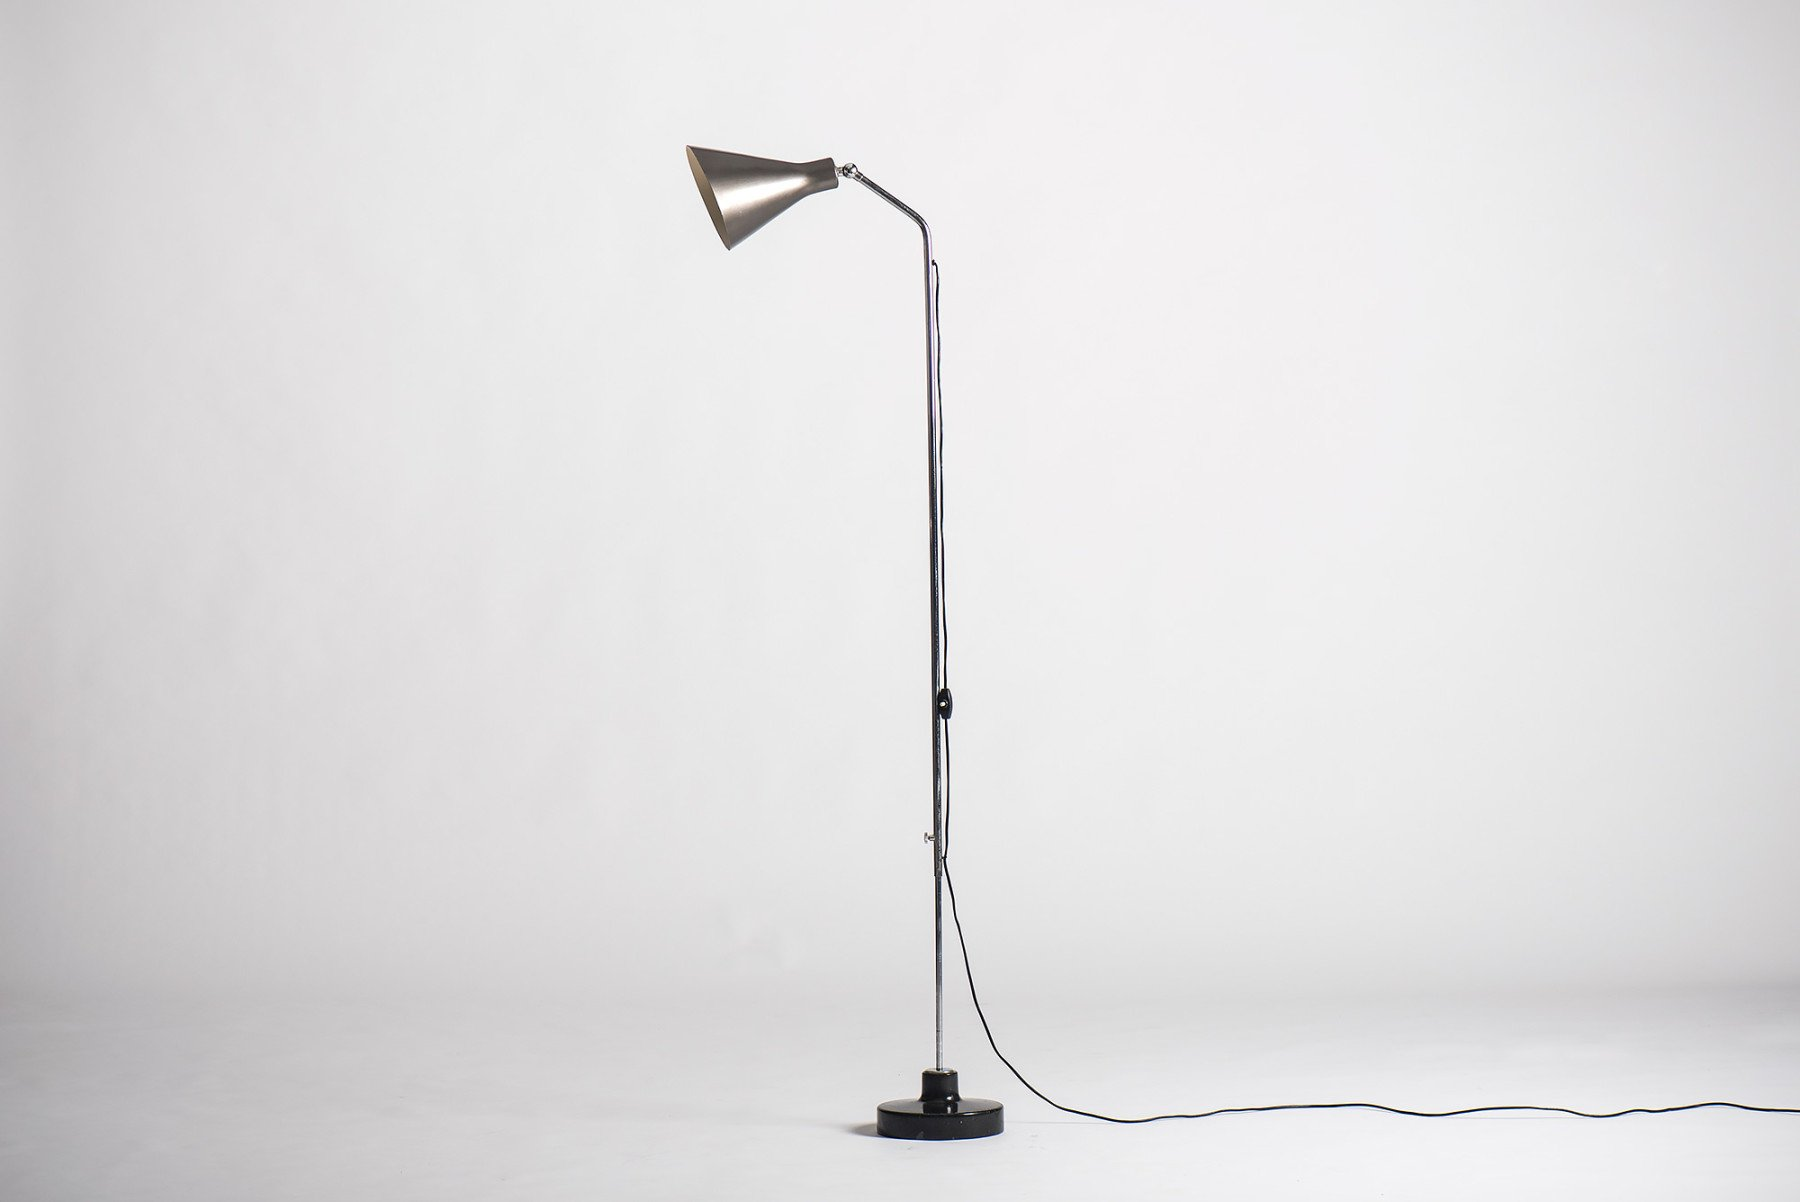 Ignazio Gardella |   Floor lamp, model lte 3